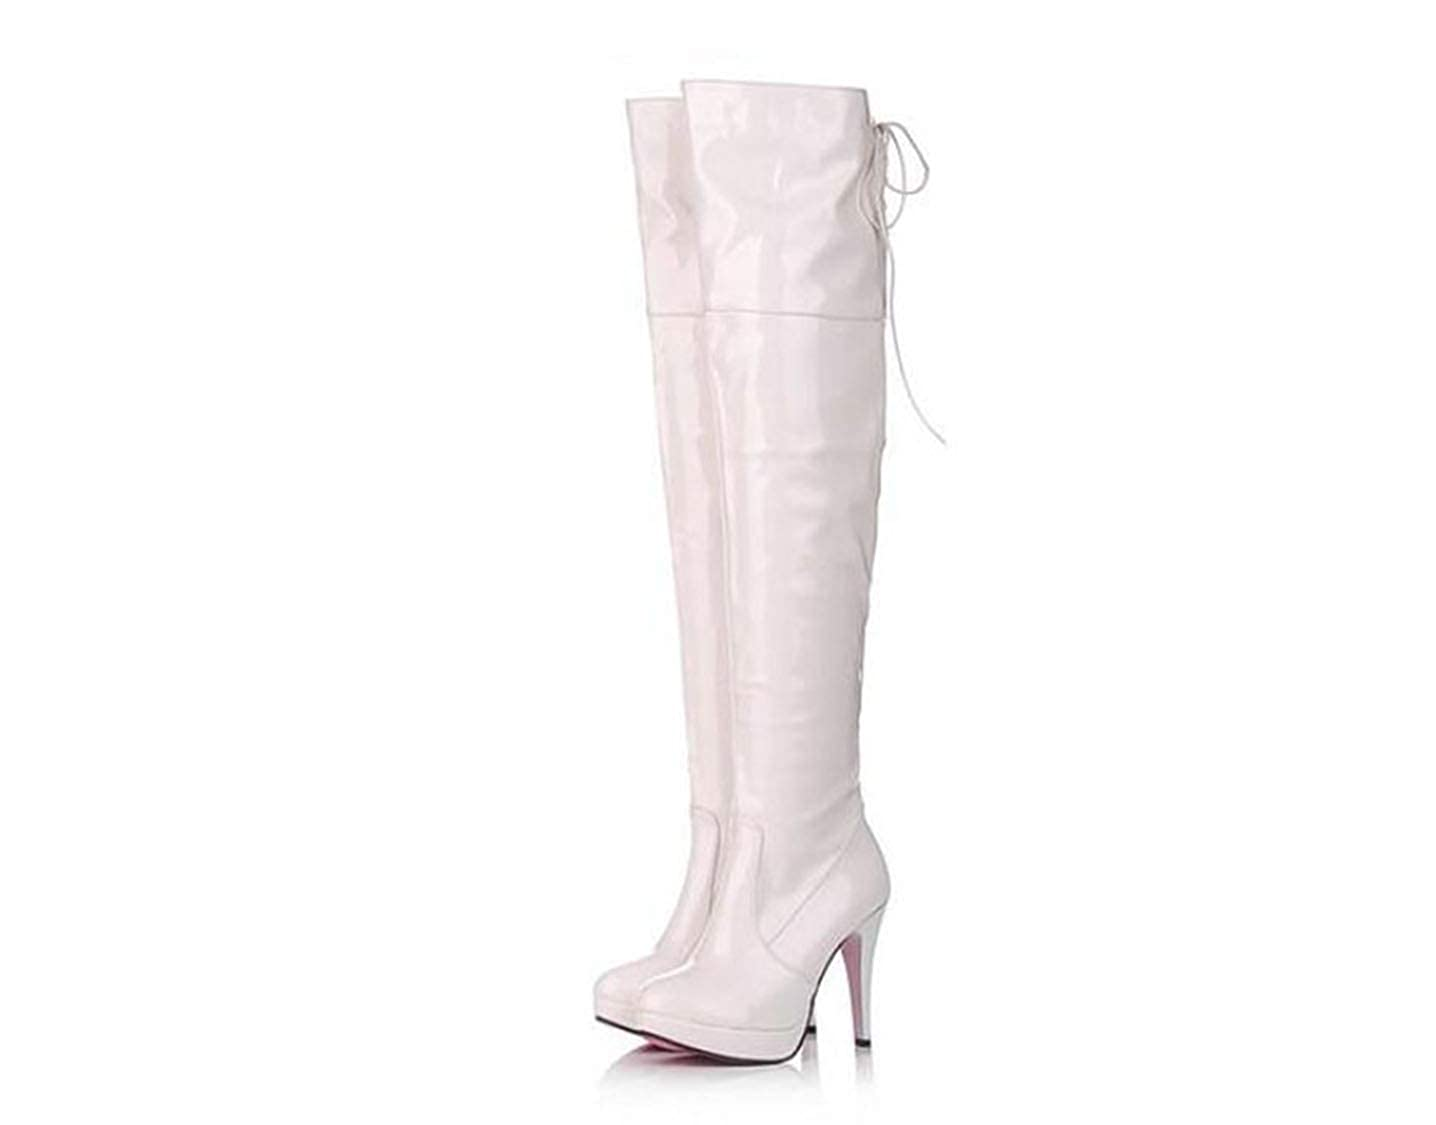 White DOSOMI Women's Leather Over The Knee Shine Boots - Sexy Drawstring Stretchy Pull on - Comfortable High Thin Heel